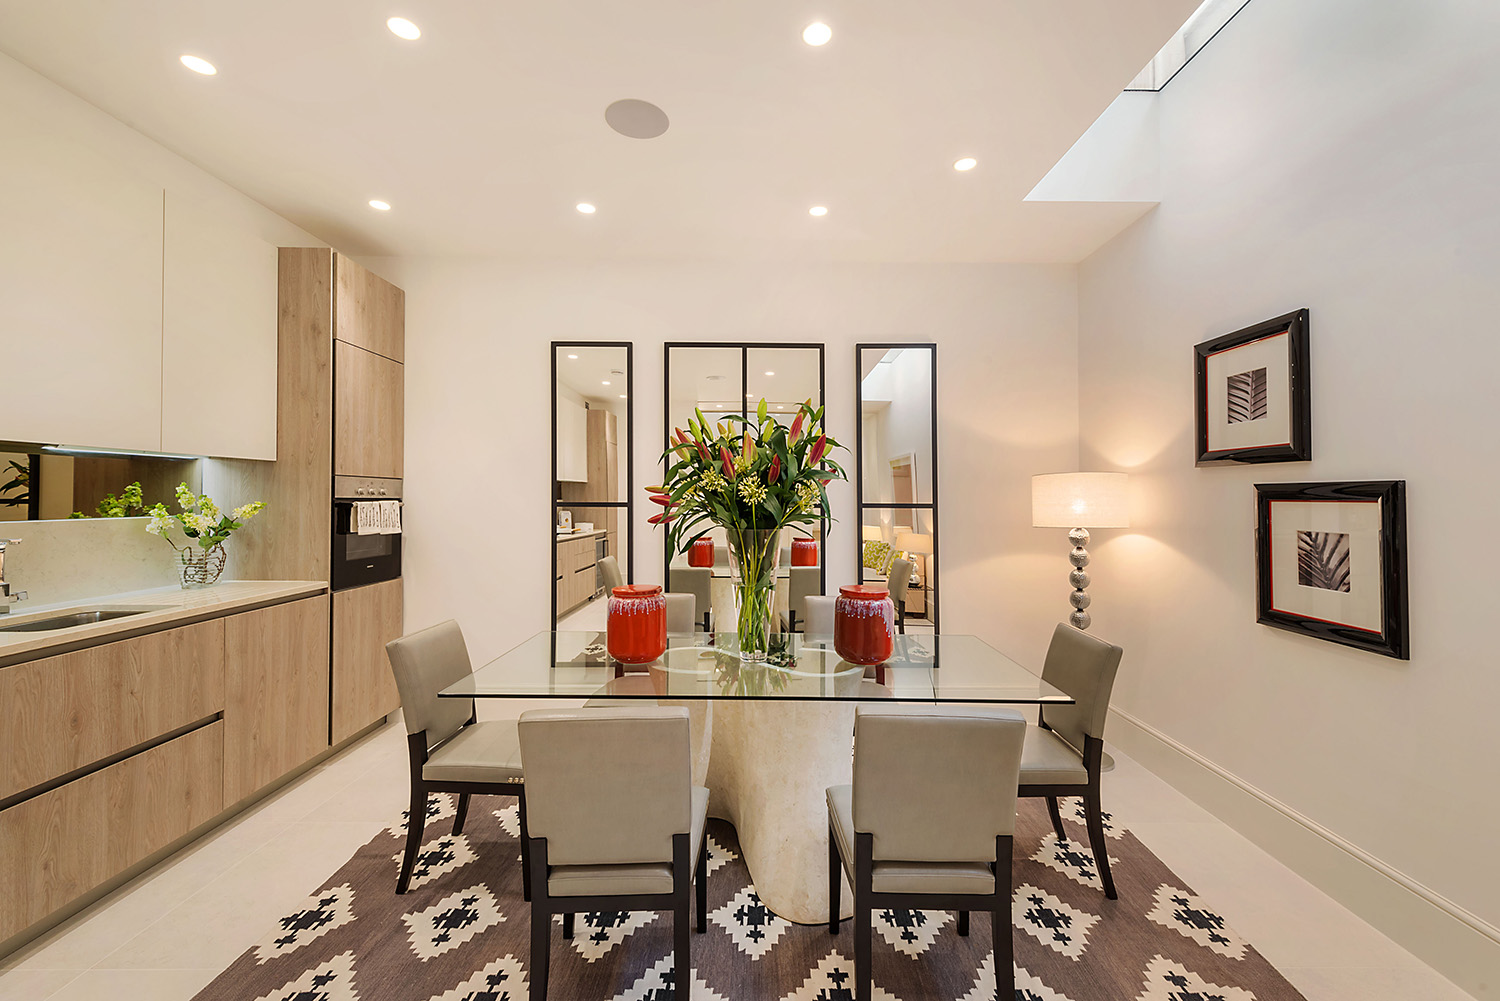 Design Box London - Interior Design - Kensington Mews House W8 - Dining Room